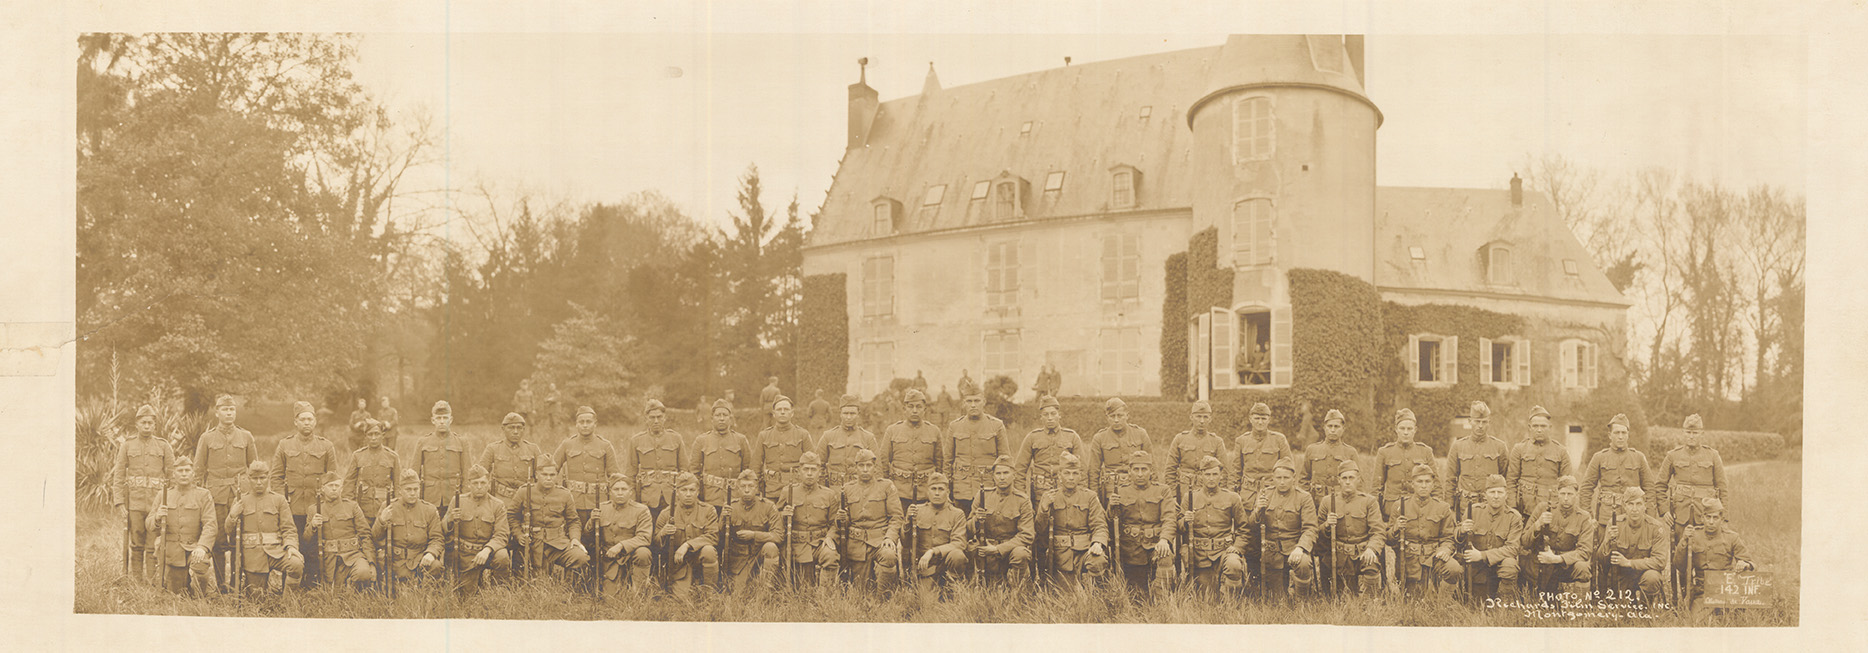 36 Division 142 Infantry Company E in France